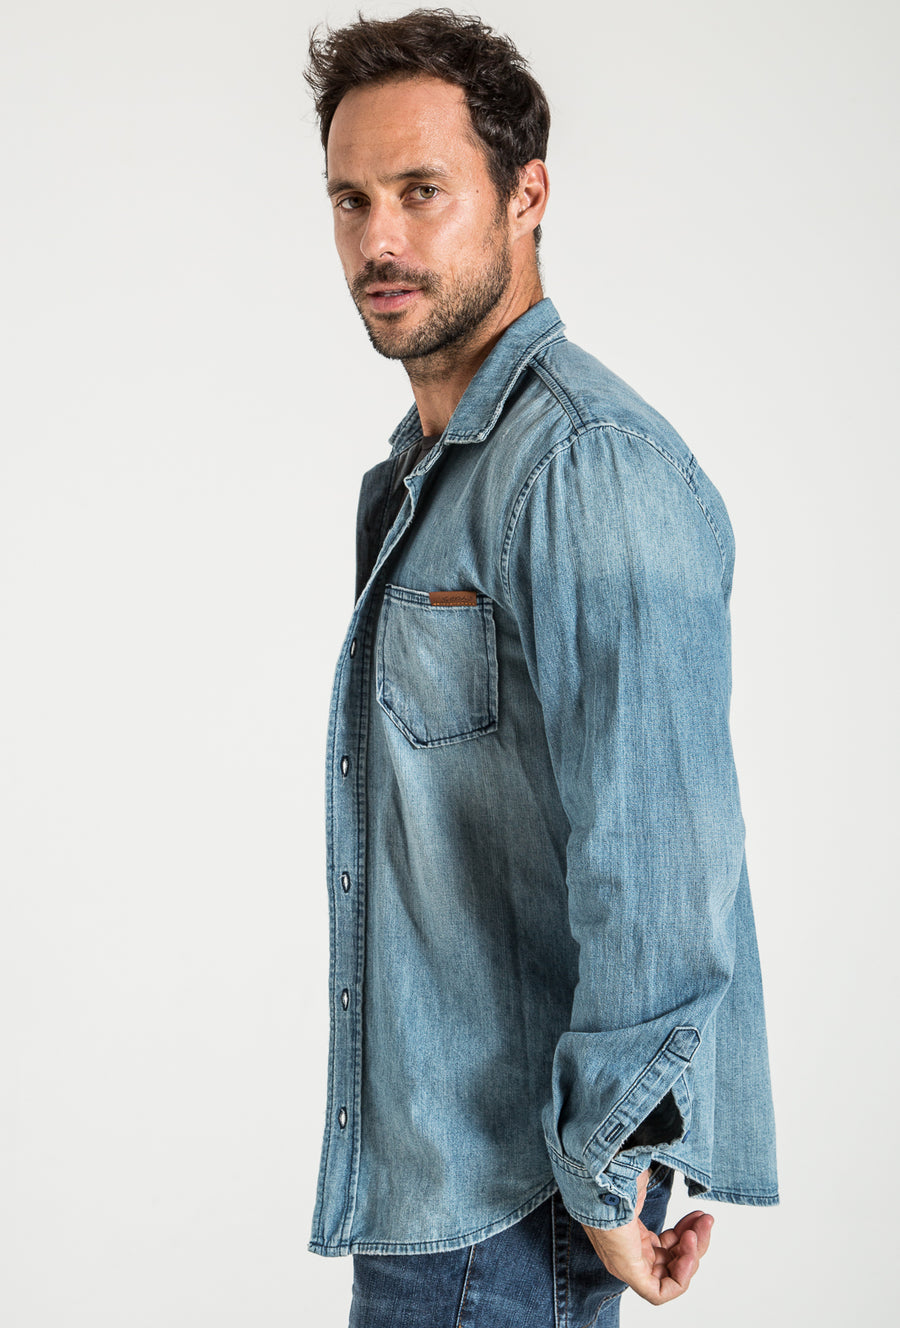 BUTTON DOWN DENIM SHIRT IN AMERICA WASH